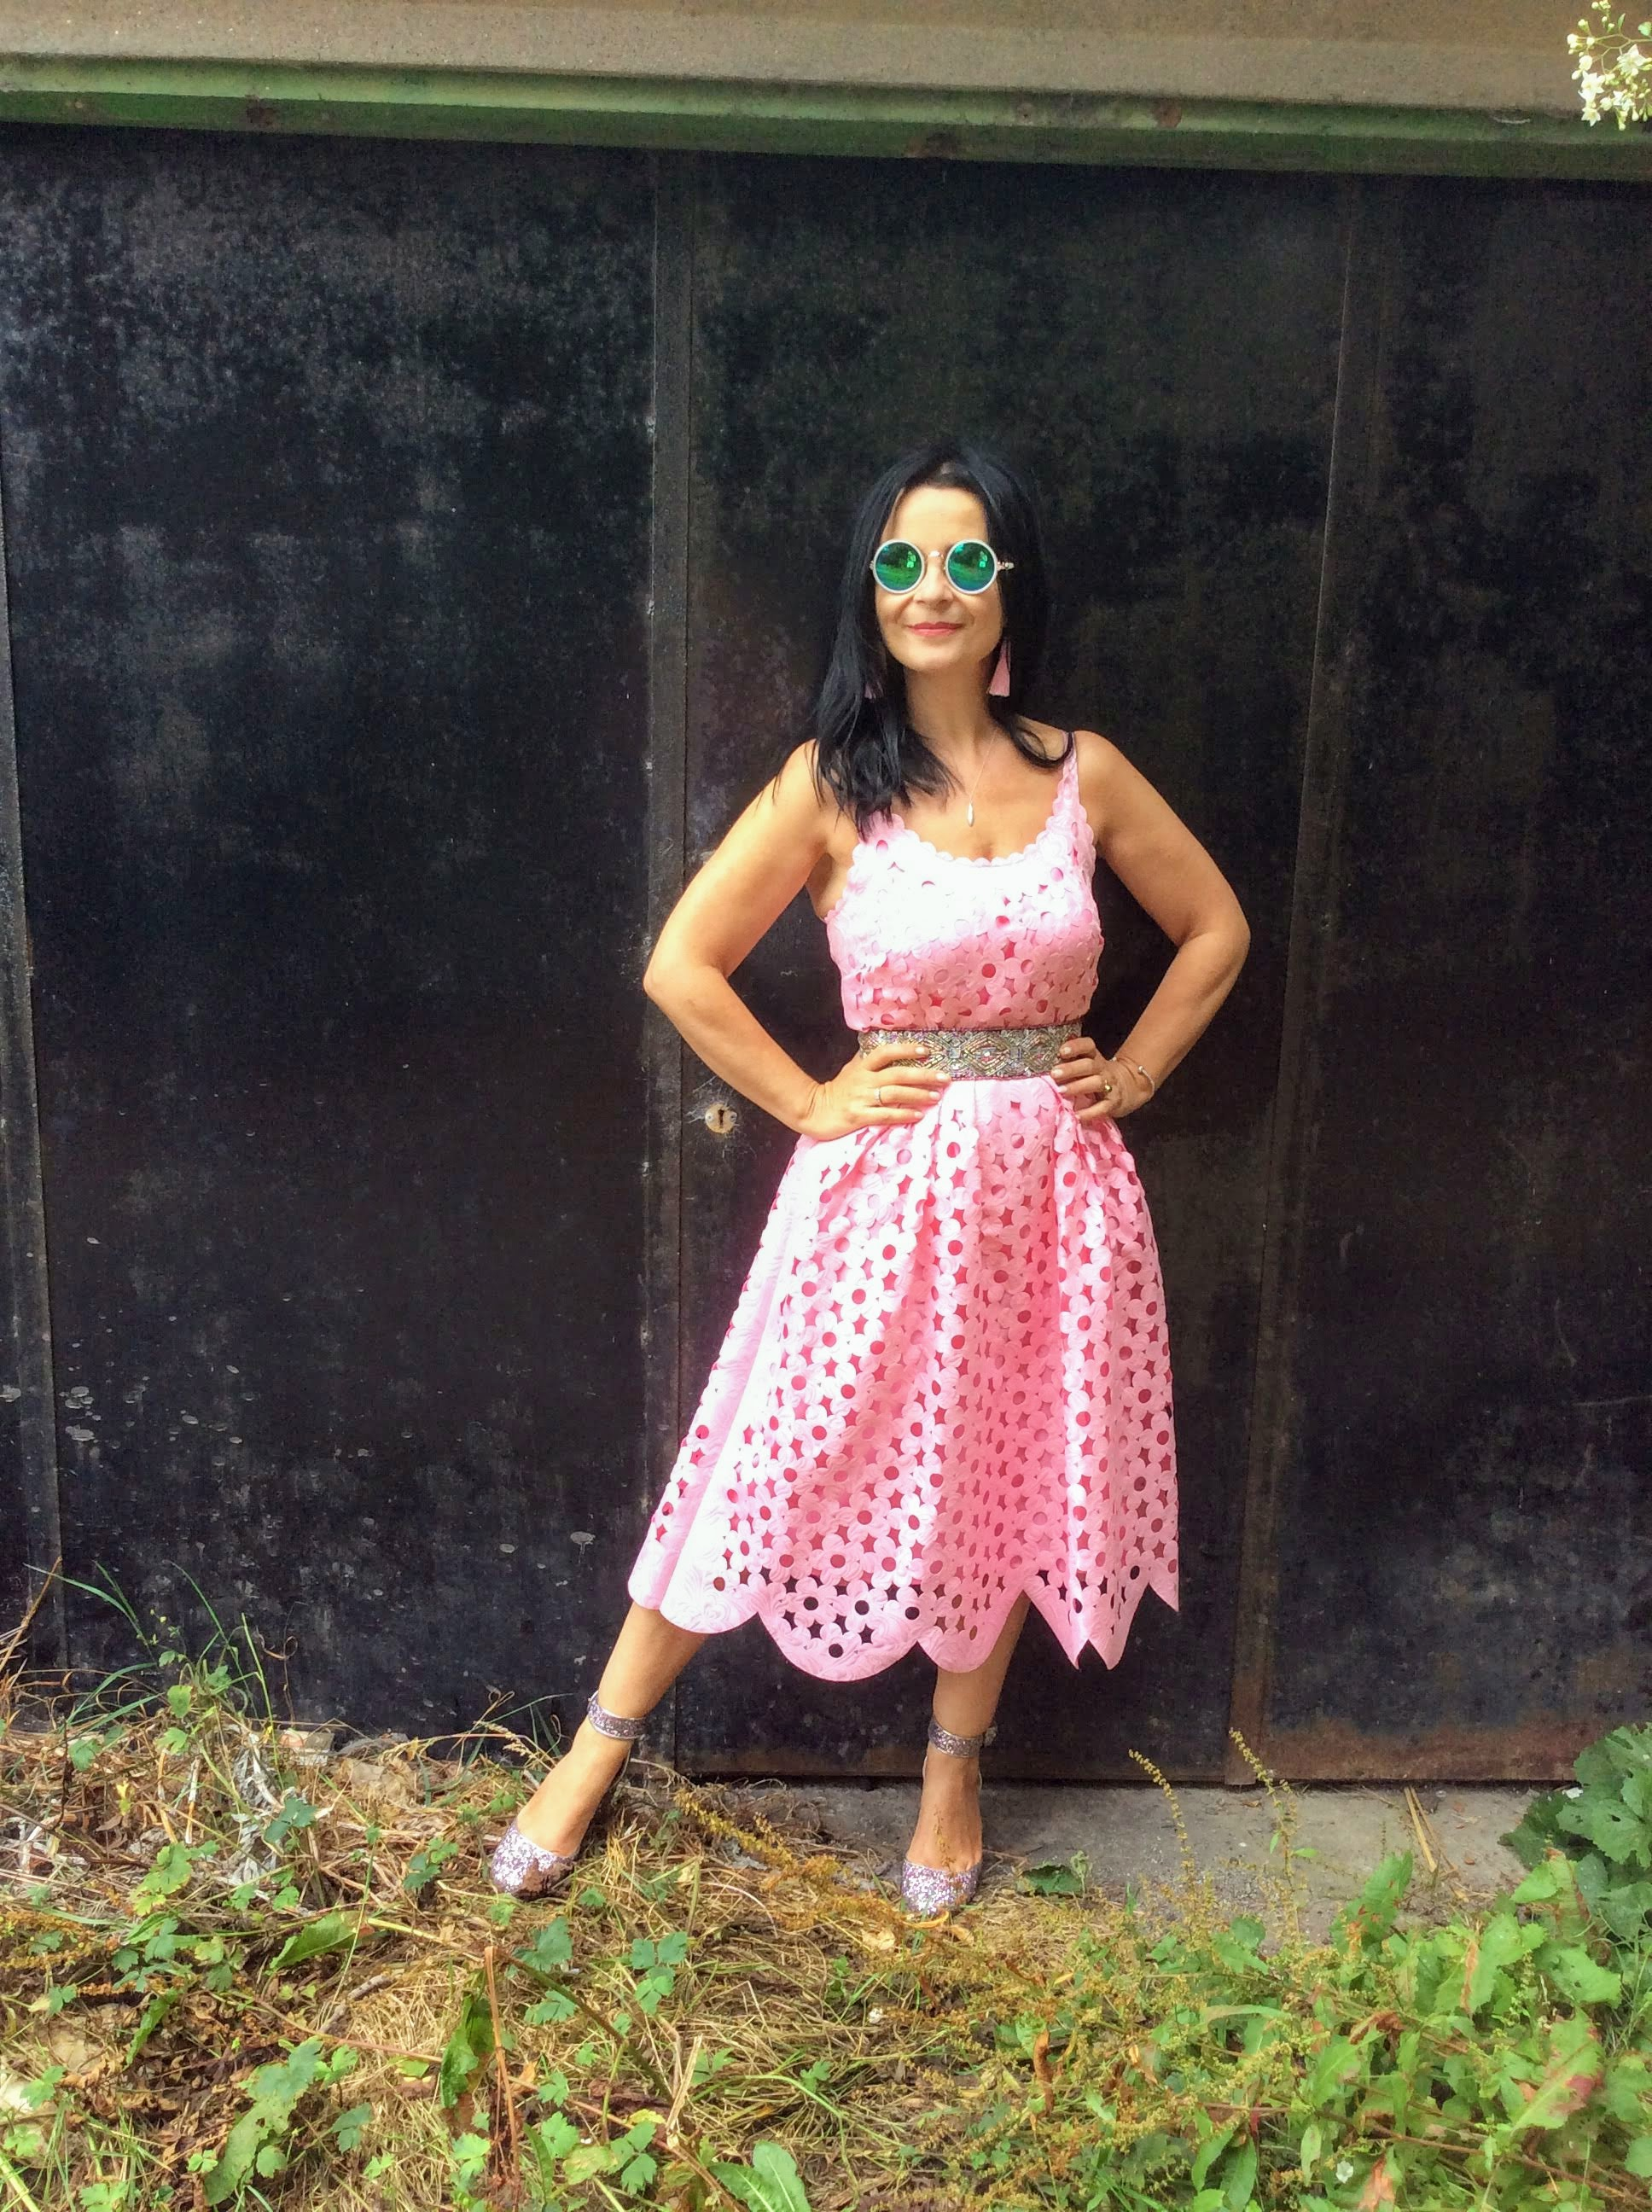 Pink laser cut dress savida at dunnes stores cost €25 in summer sale